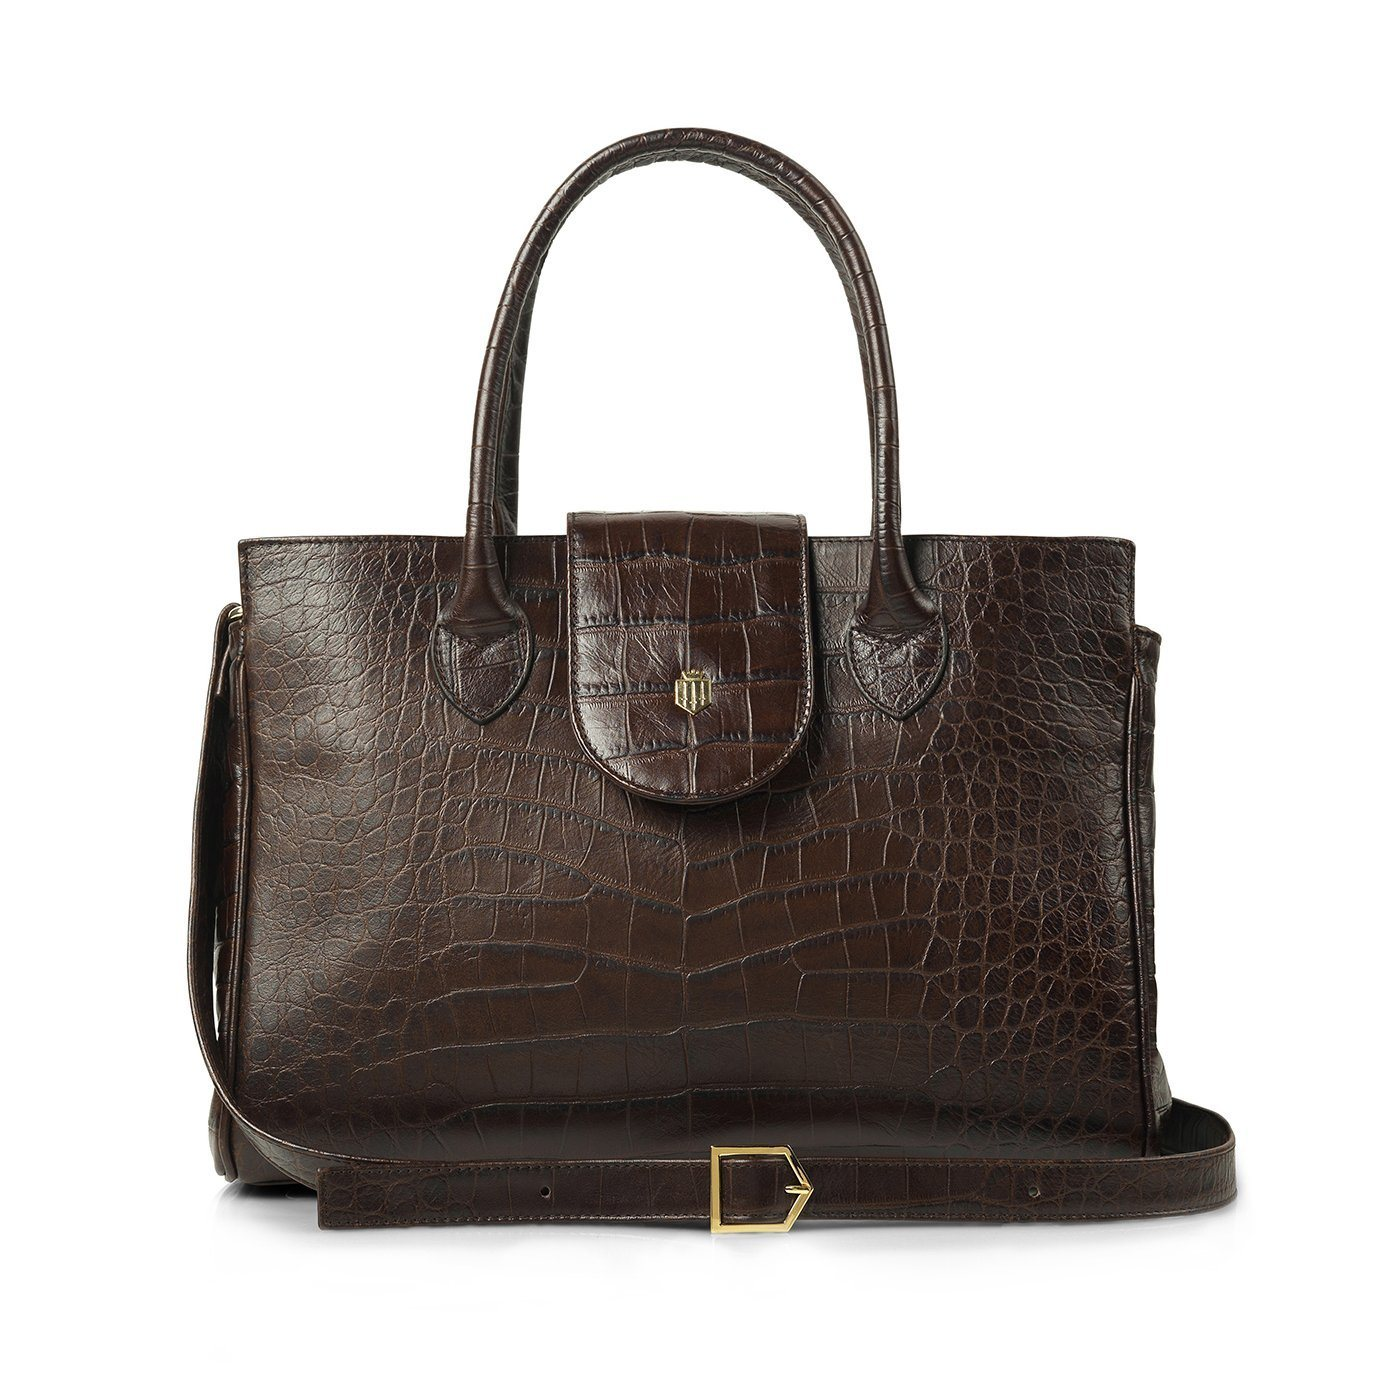 Langley Leather Handbag, chocolate croc print